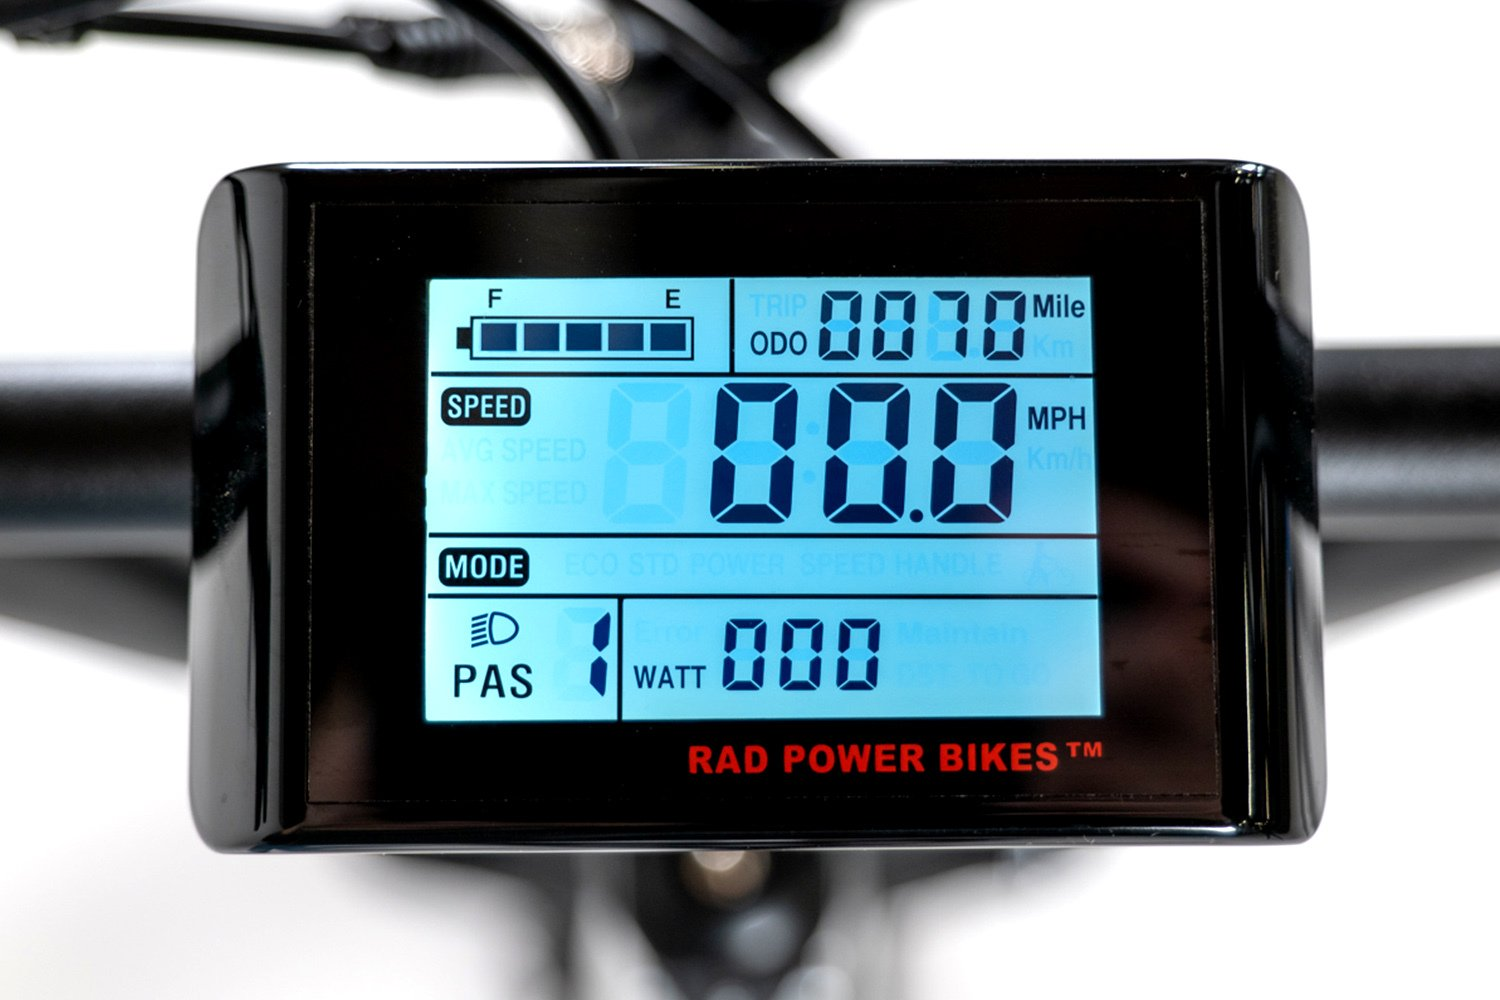 RadRhino Electric Fat Bike Version 5 - 250W display